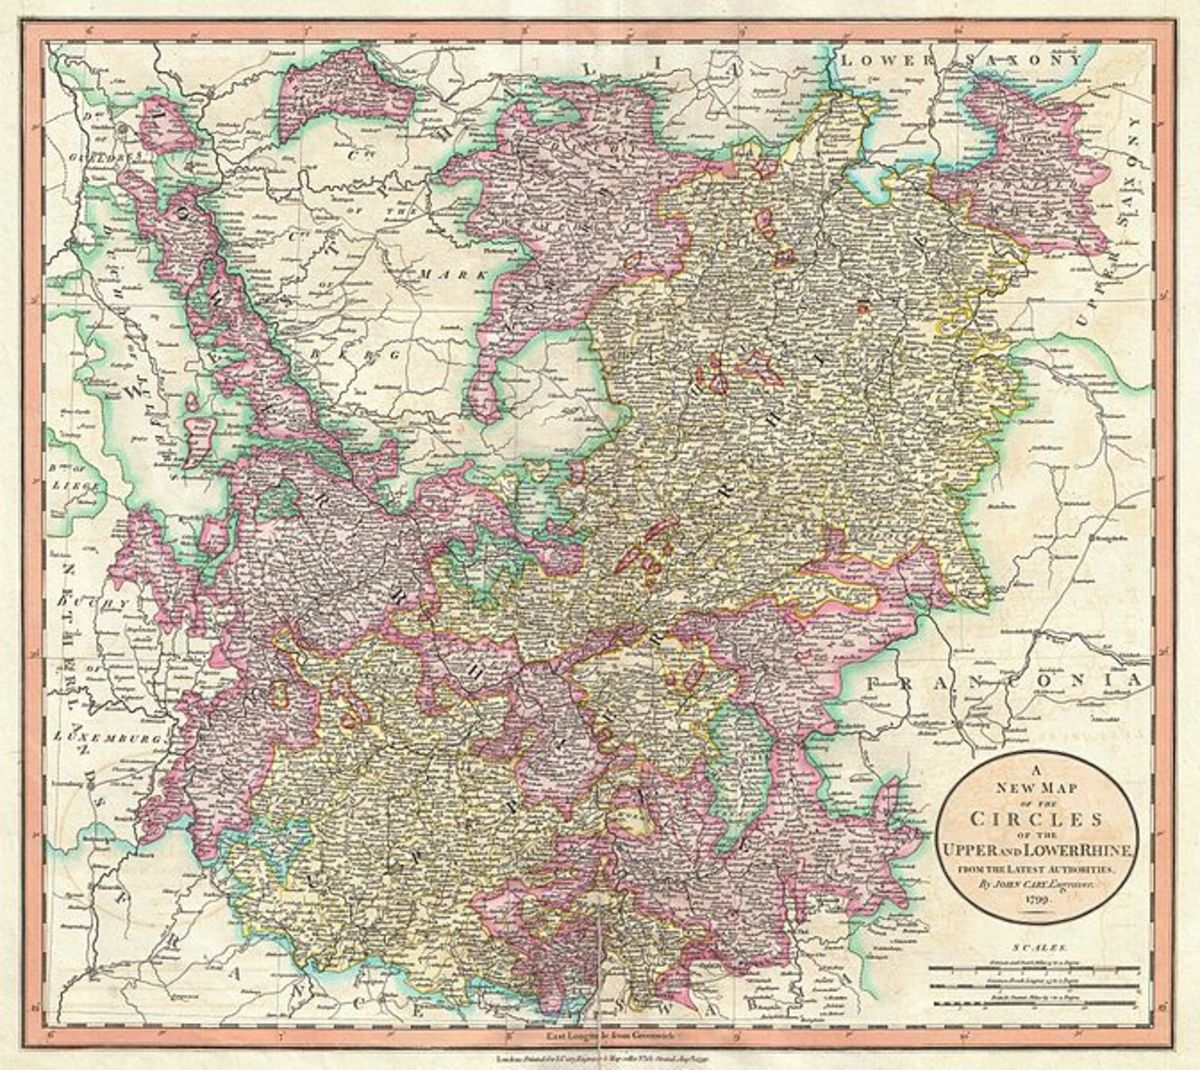 1799 map of the Rhine region of Germany